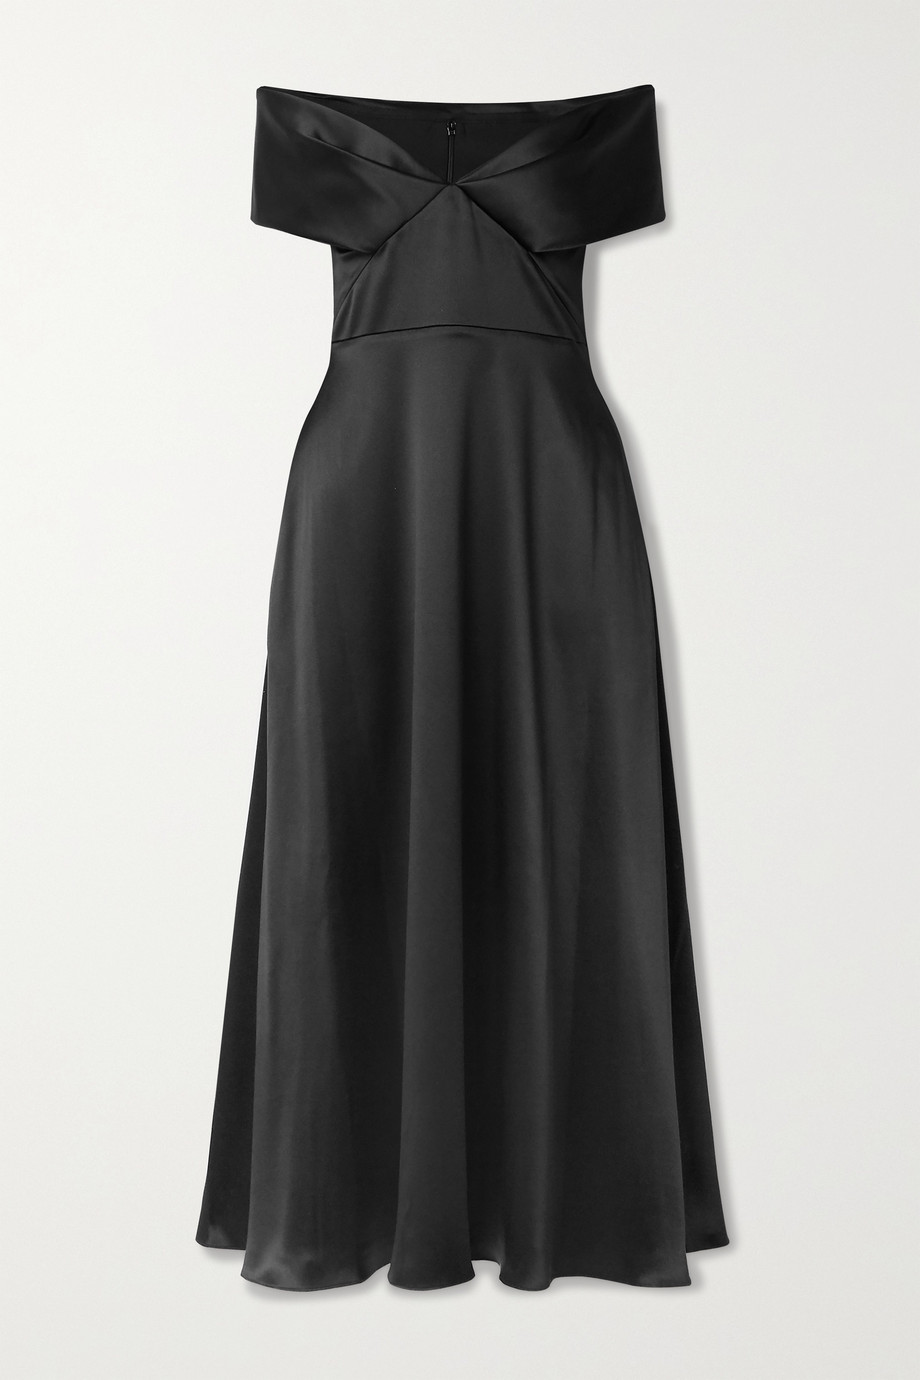 BRANDON MAXWELL Off-the-shoulder satin midi dress